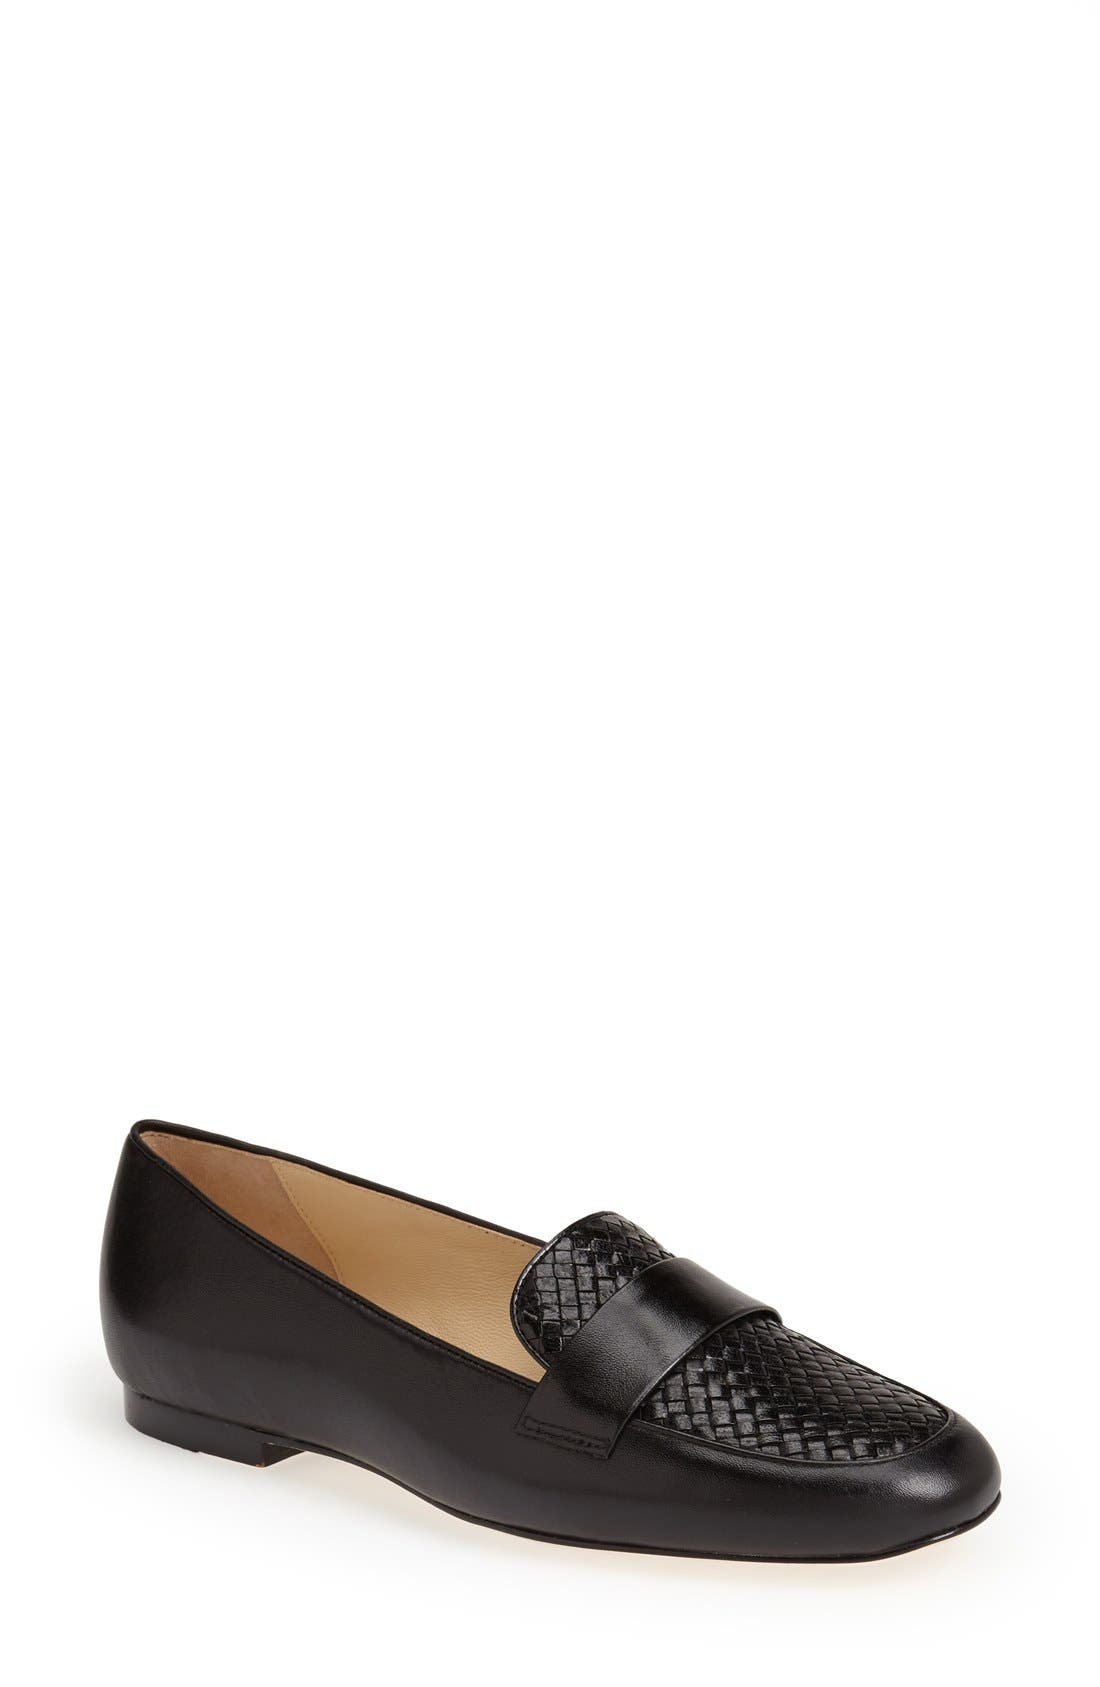 Main Image - Cole Haan 'Dakota' Woven Leather Loafer (Women)